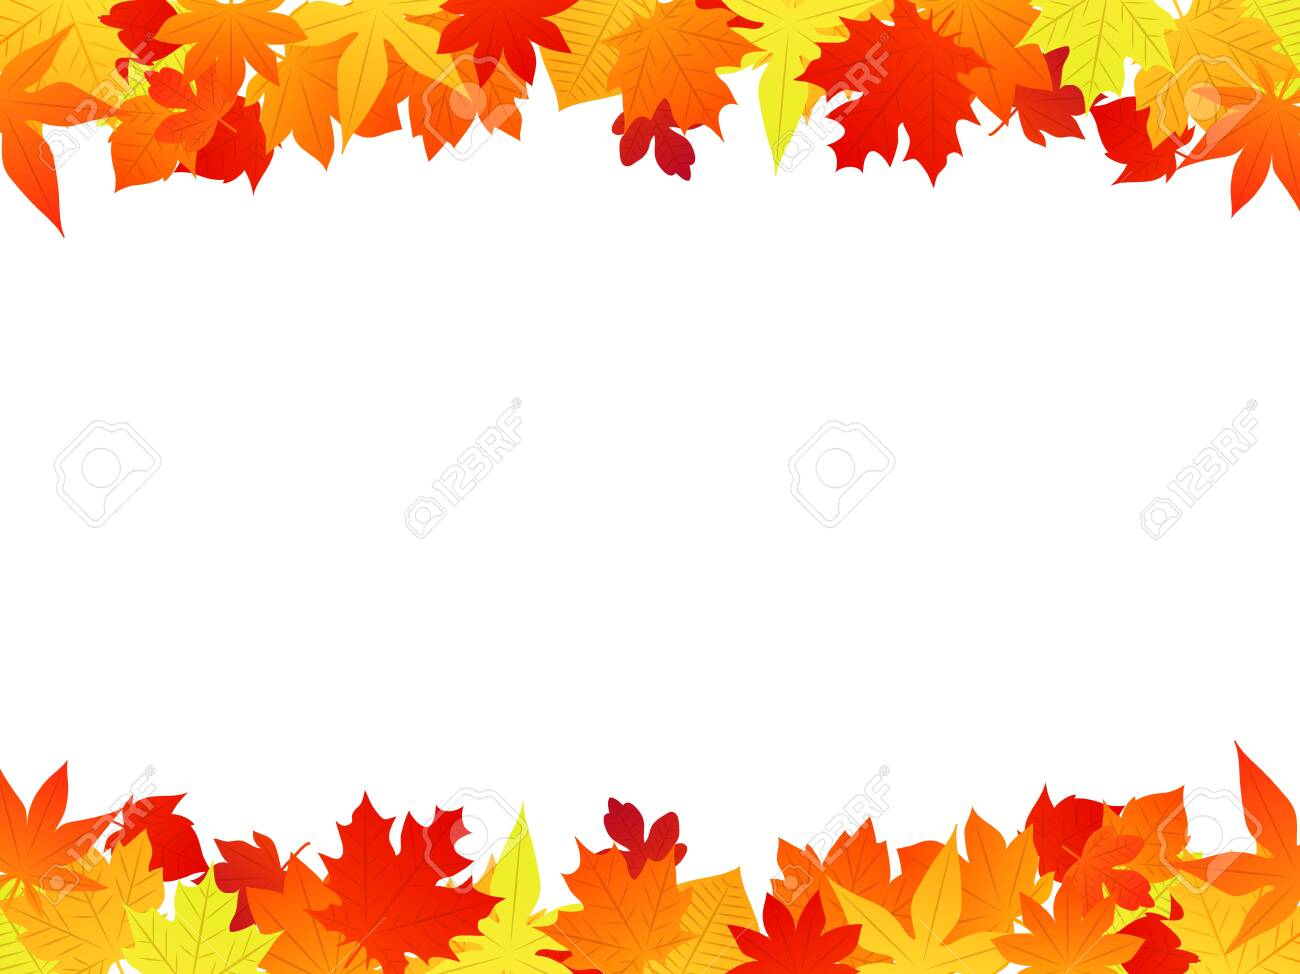 Autumn fallen leaves illustration frame,yellow and orange and red, vector material - 129308437